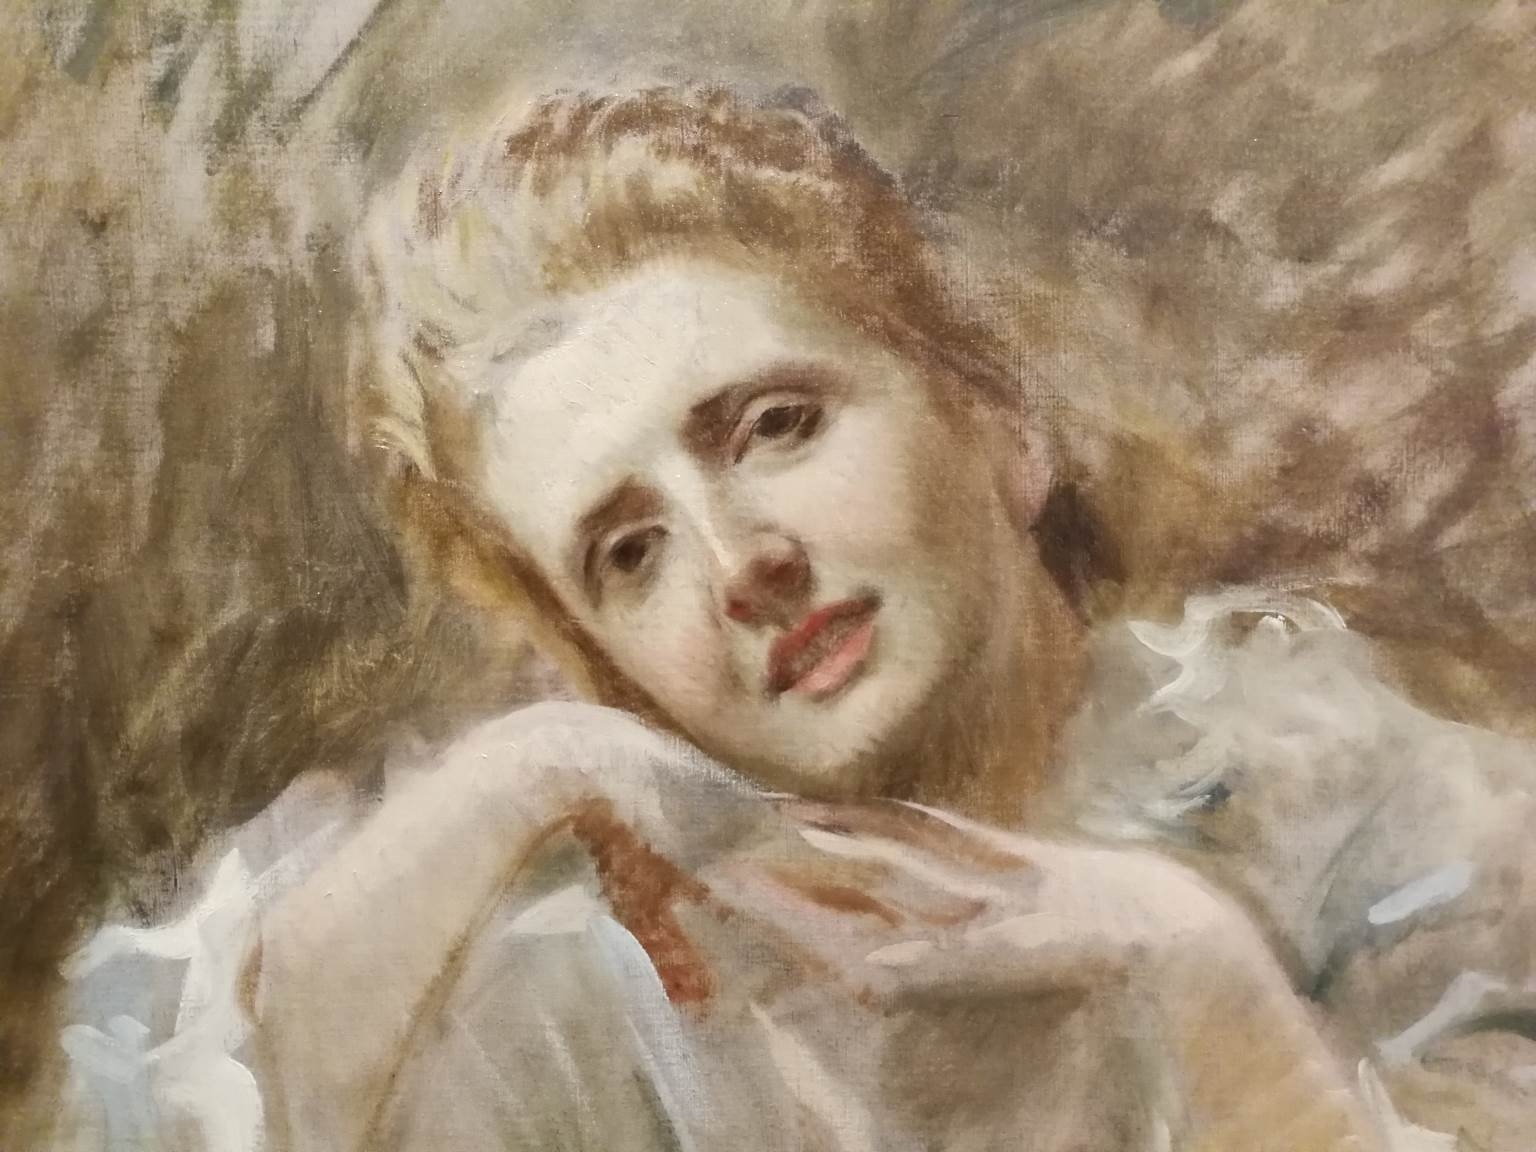 Michele Gordigiani, Portrait, 1878, oil on canvas, signed and dated